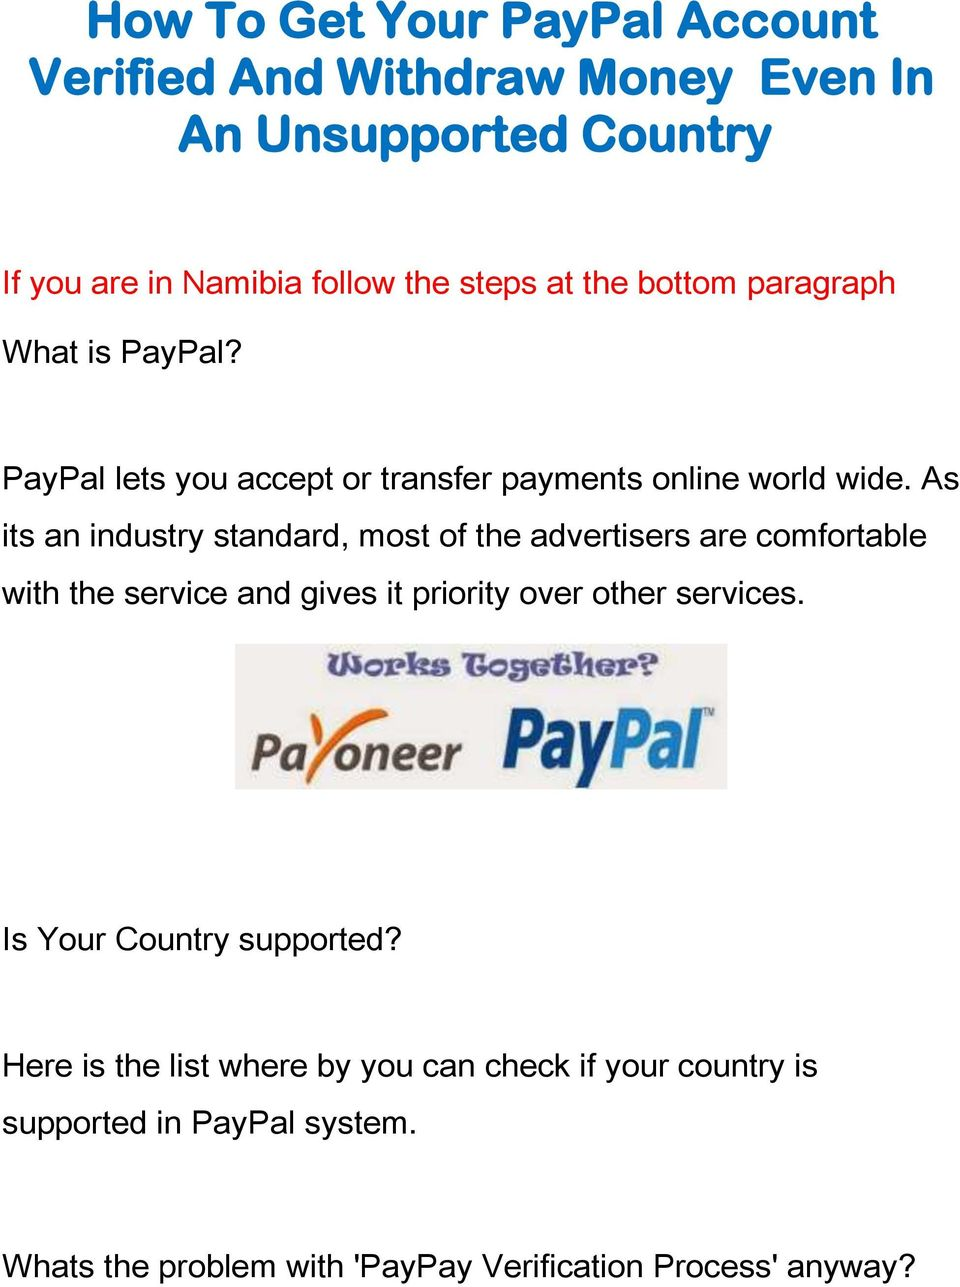 How To Get Your PayPal Account Verified And Withdraw Money Even In